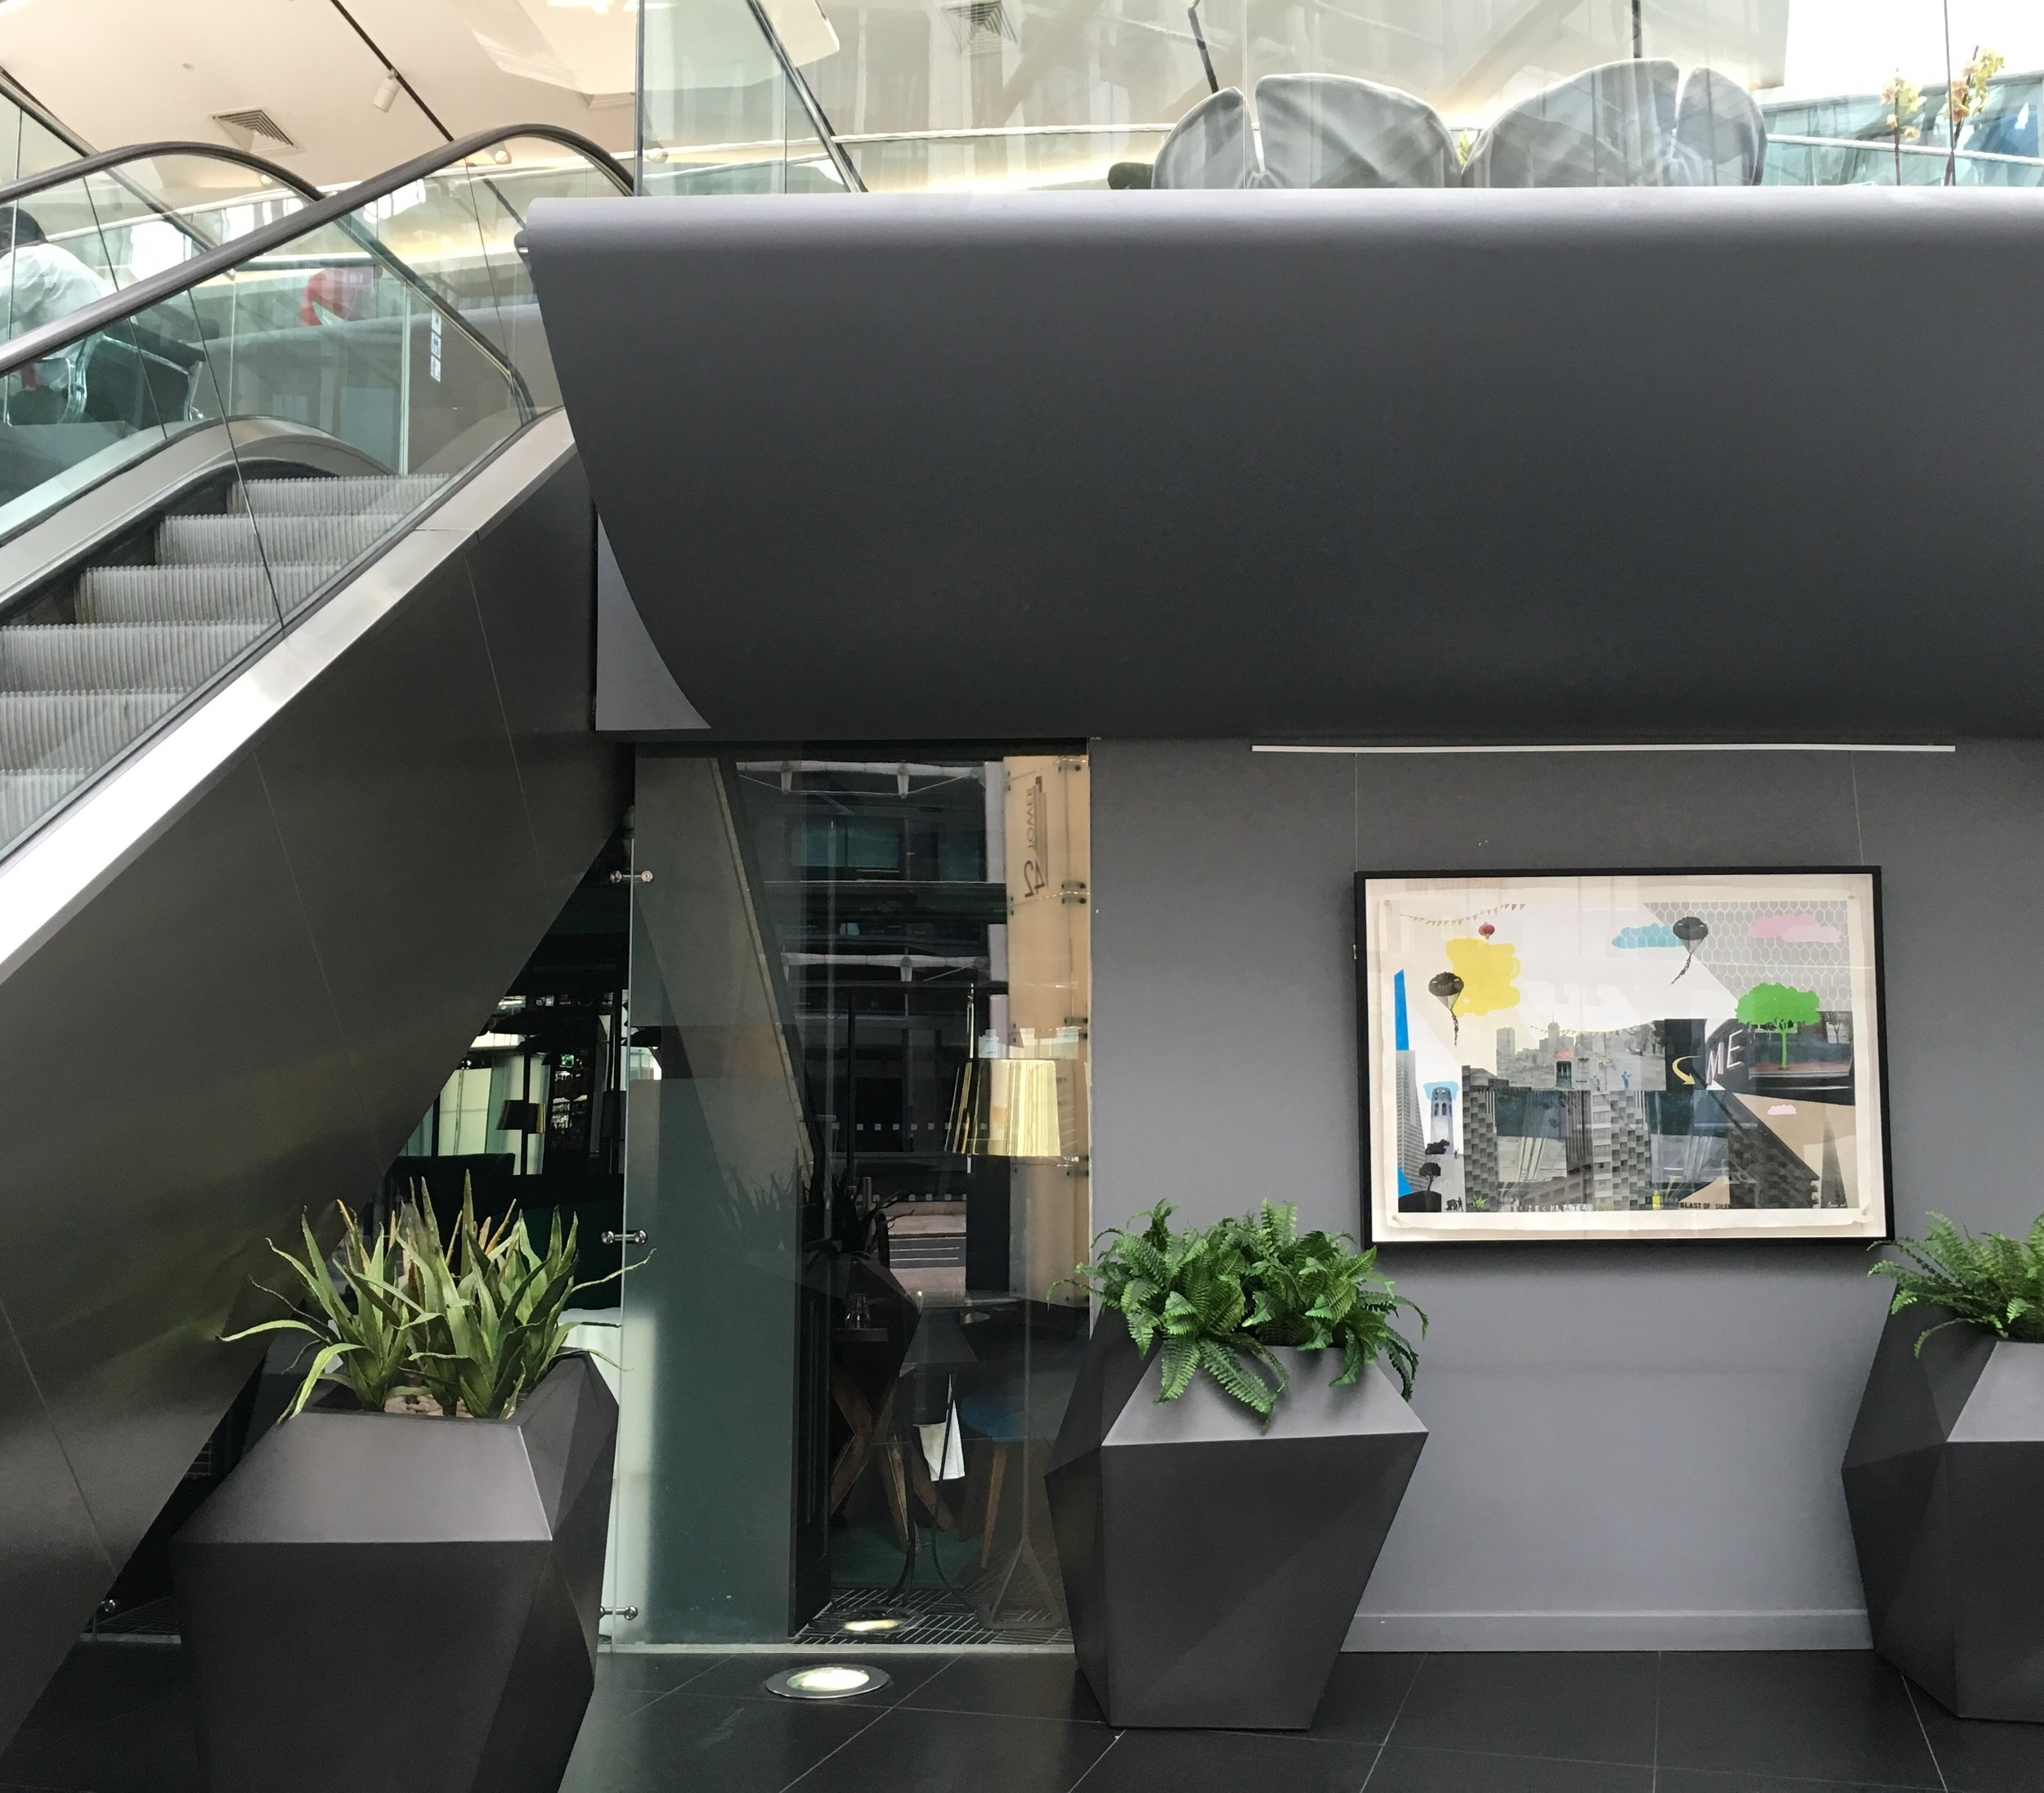 The original 'Off Road' collage by Bonnie and Clyde in the main entrance to Tower 42.